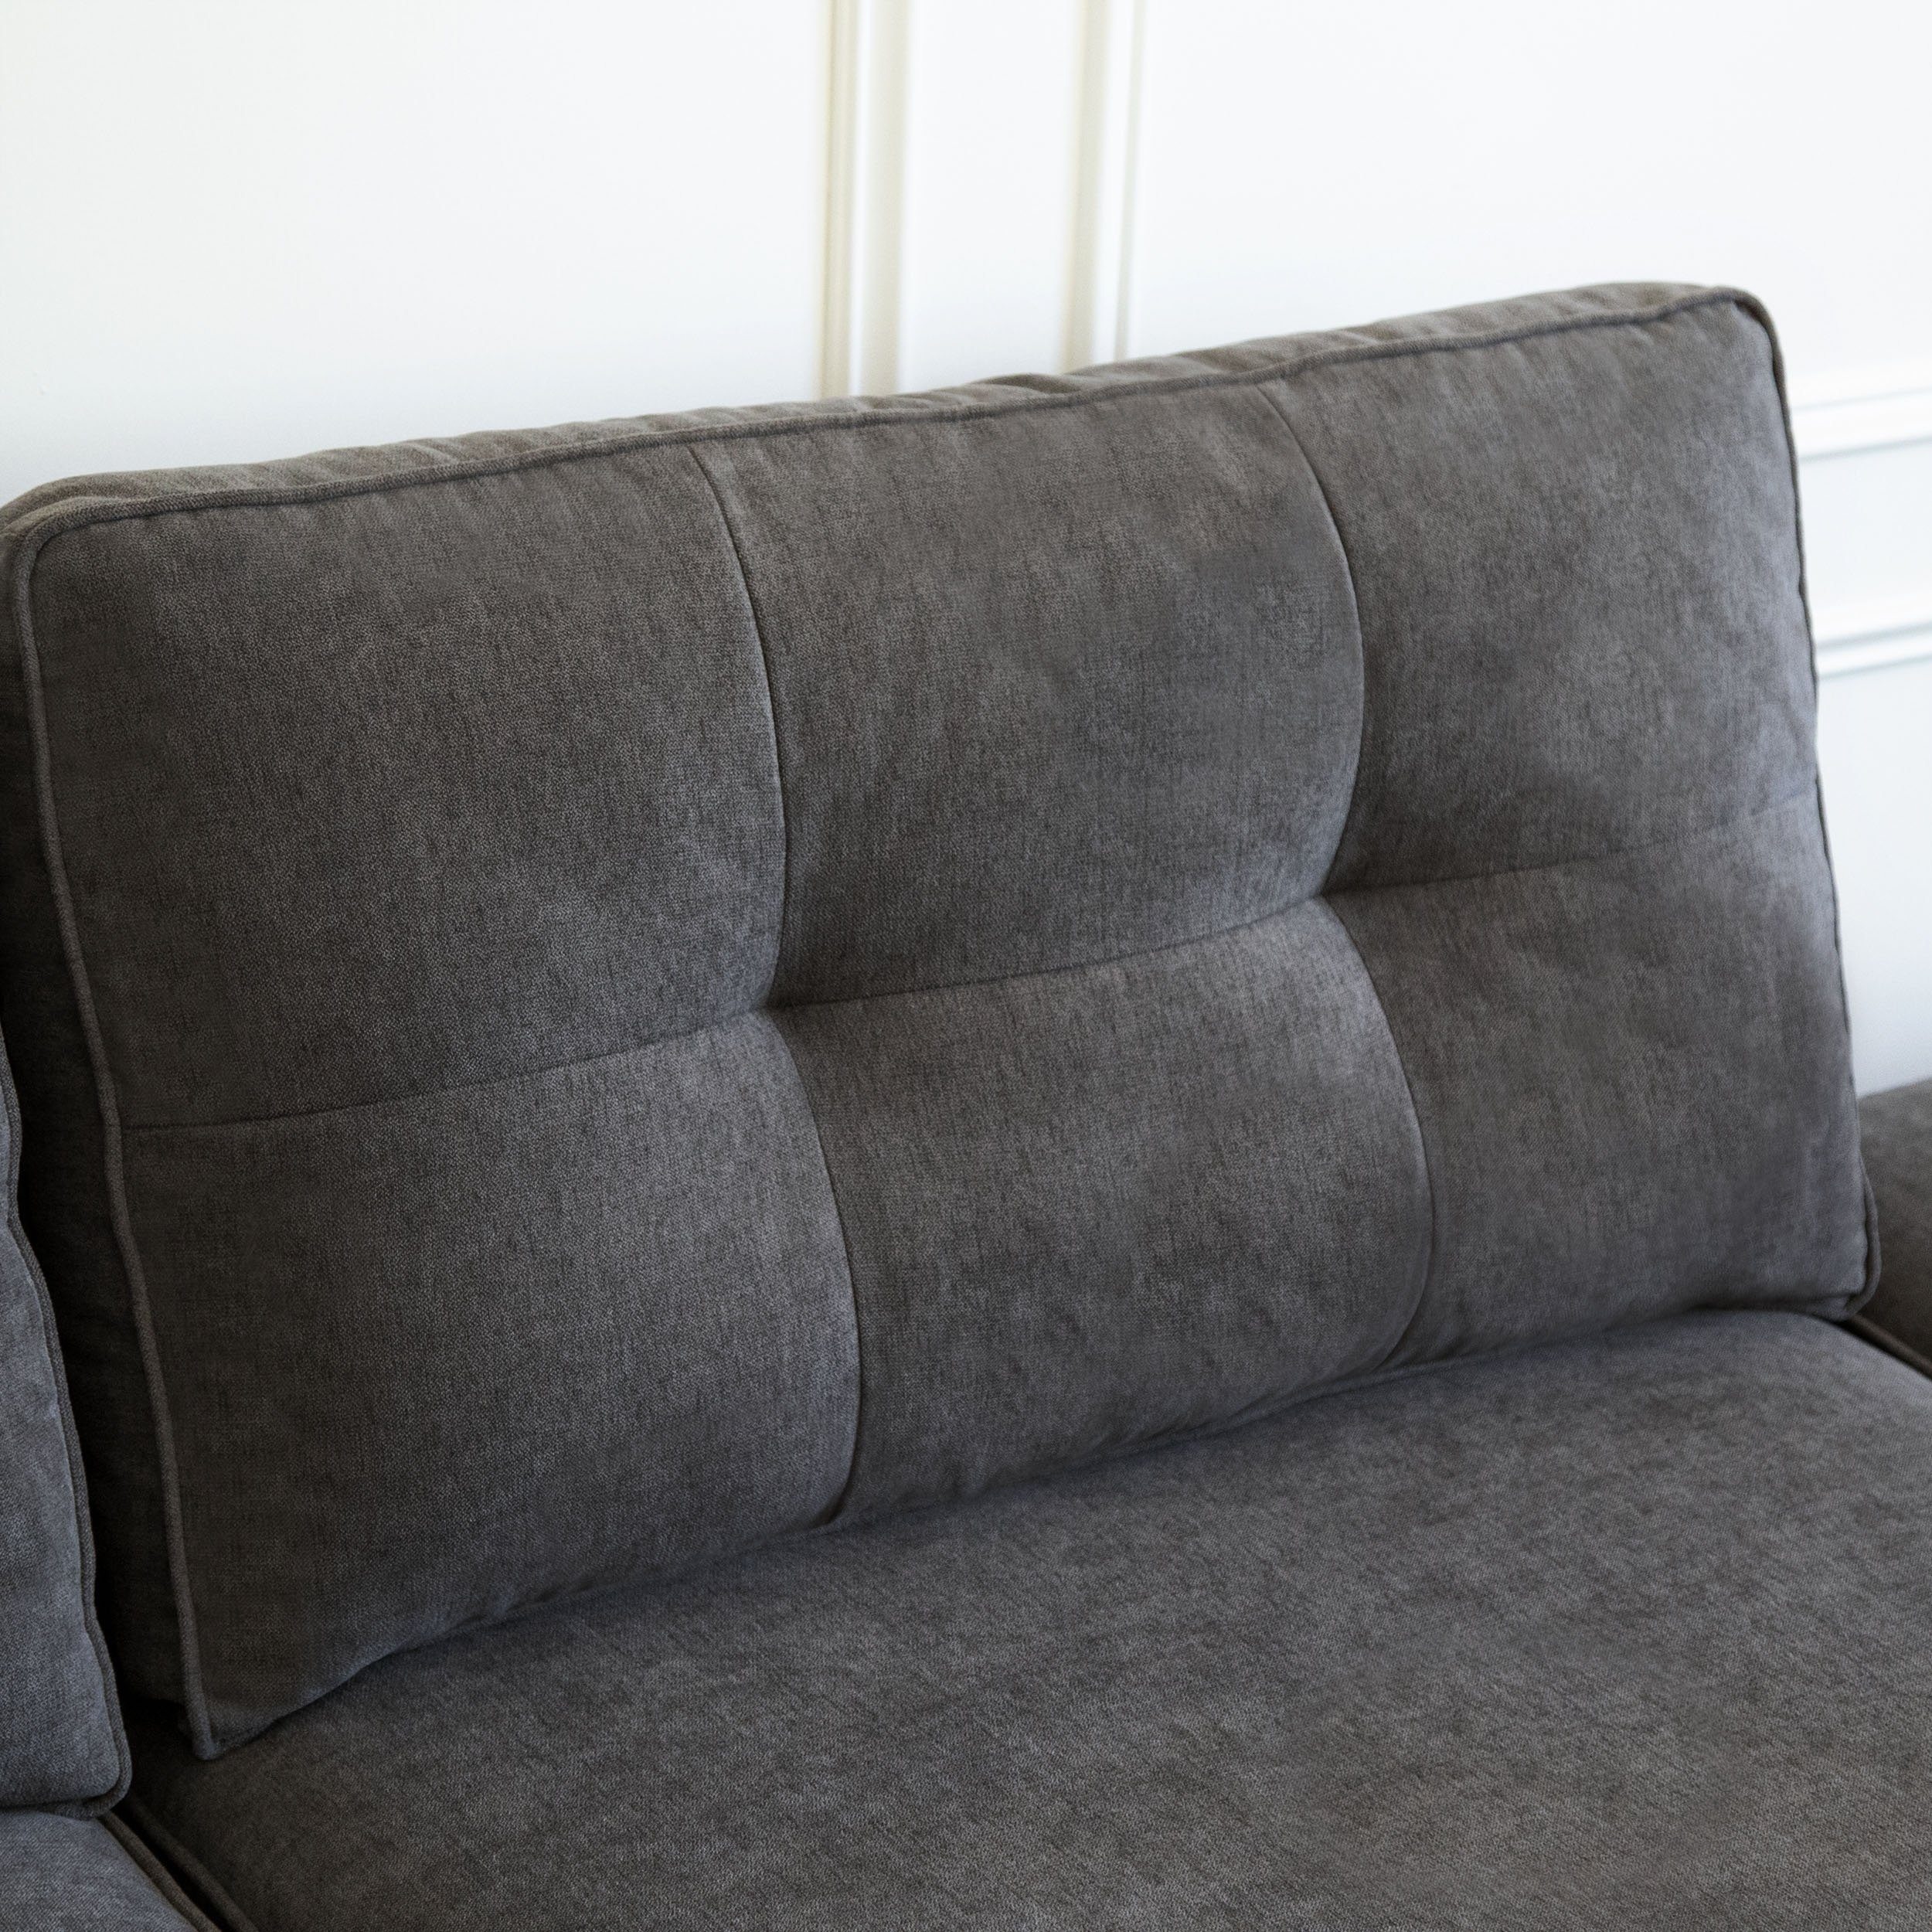 Shop Abbyson Maddox 5 Piece Modular Fabric Sectional – On Sale Intended For Maddox Oversized Sofa Chairs (Image 18 of 25)